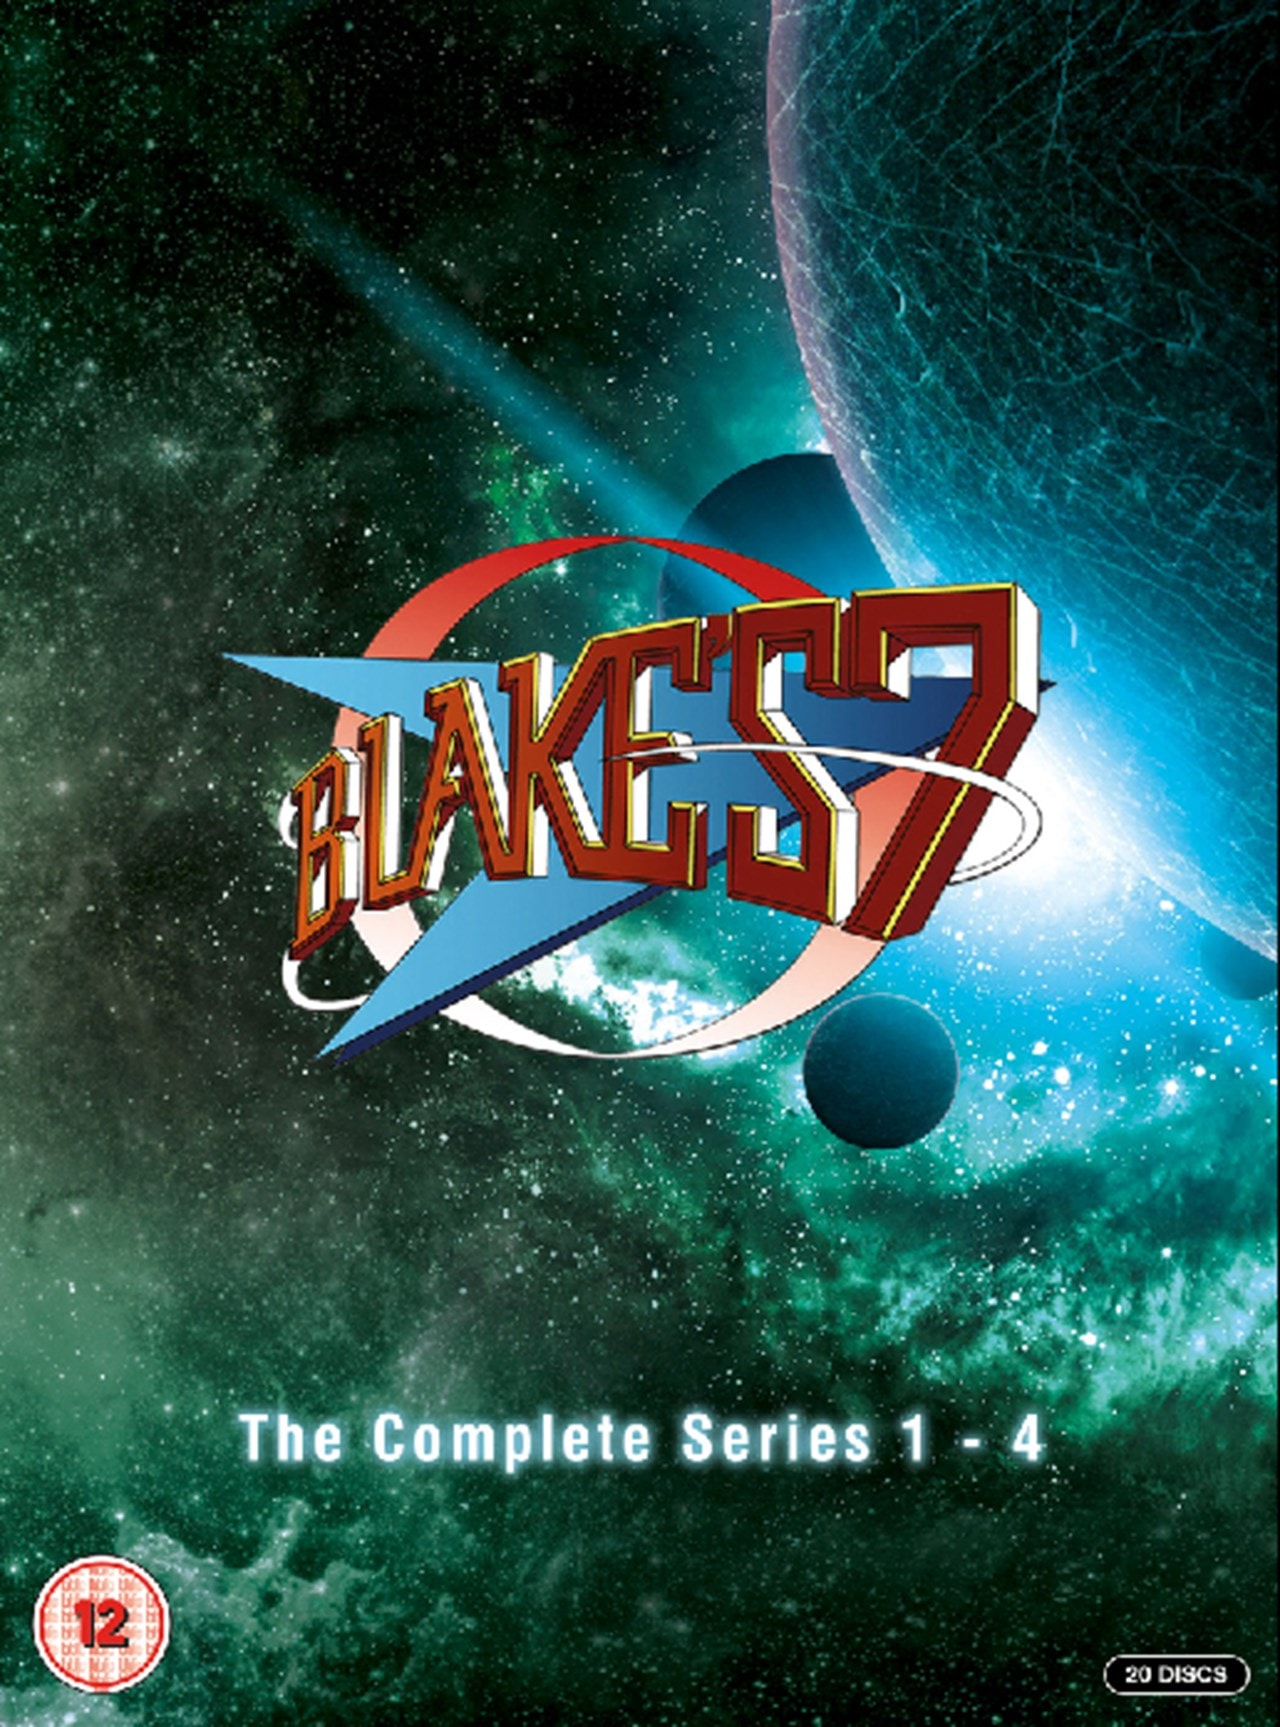 Blake's 7: The Complete Series 1-4 - 1